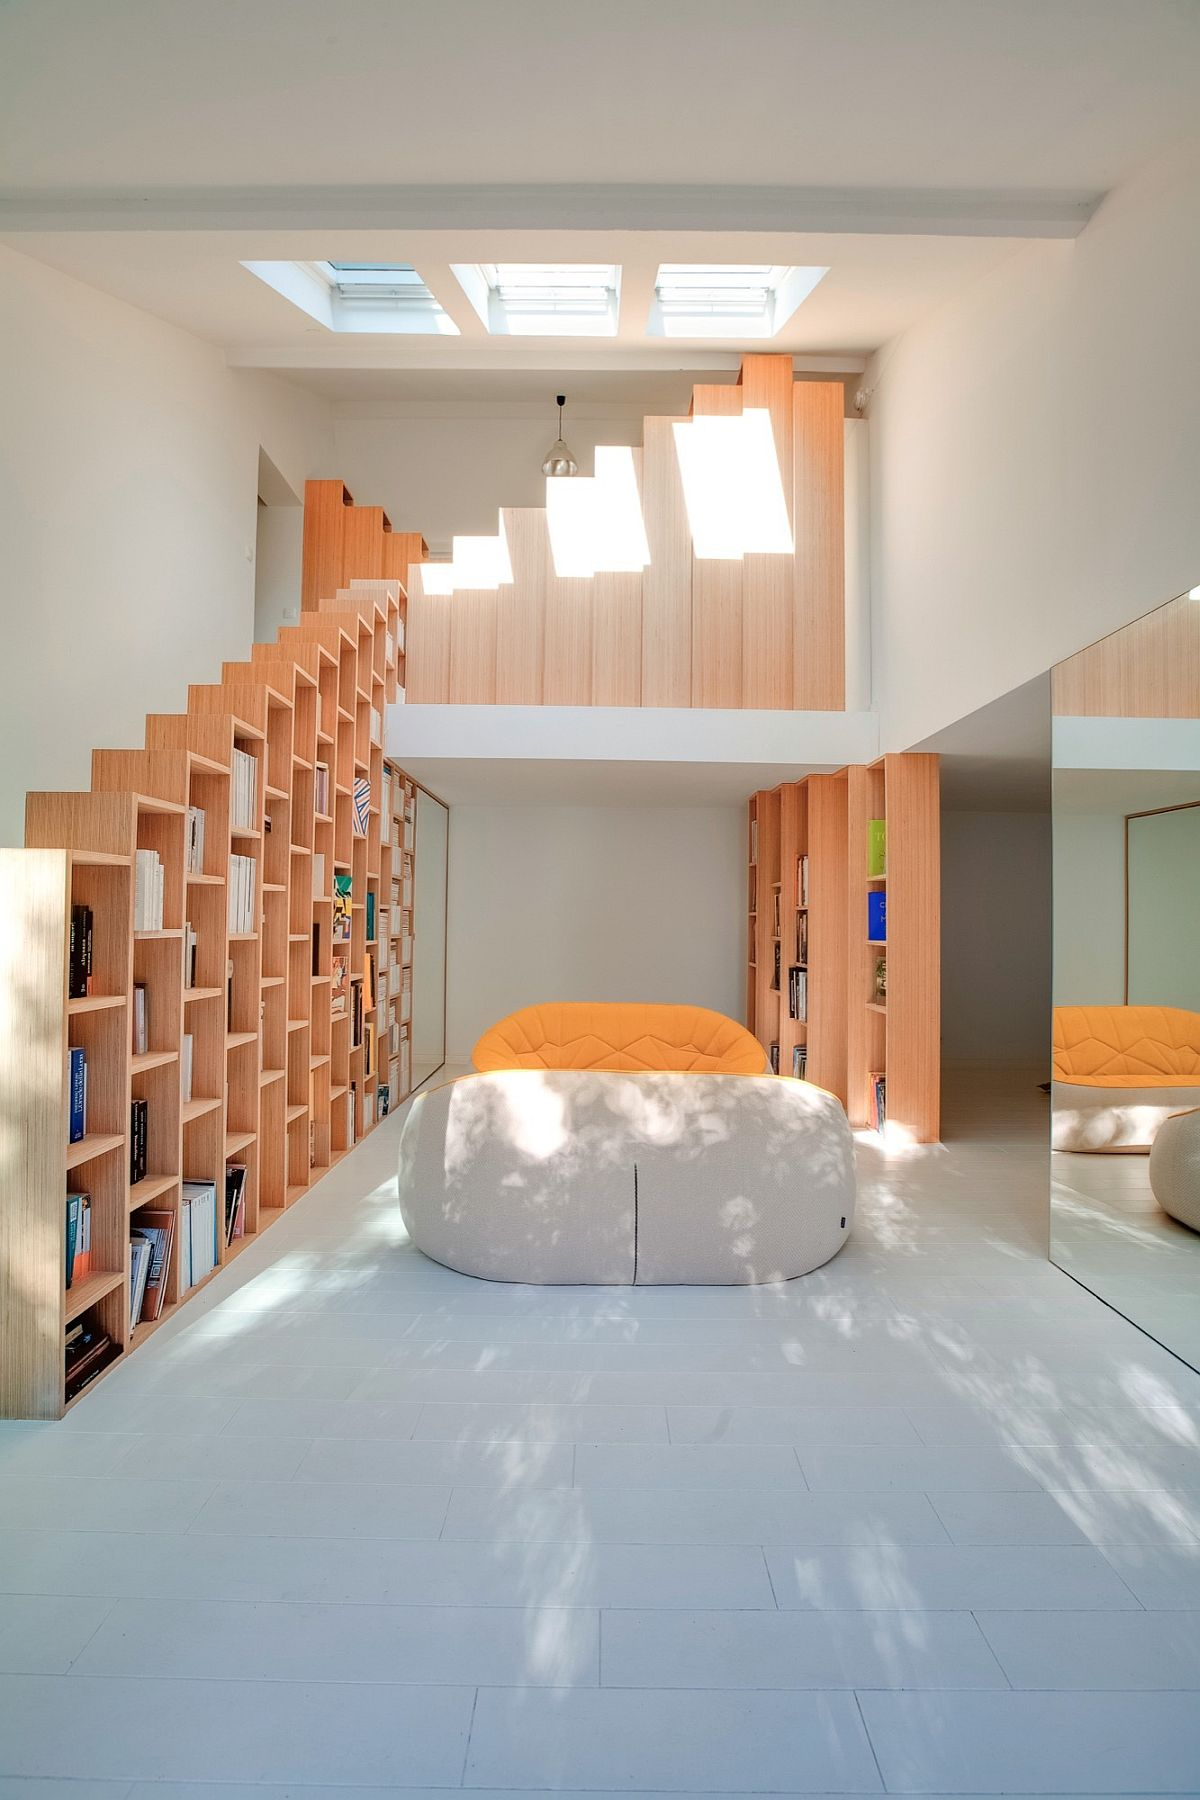 Skylights bring plenty of natural light into the lower level living area